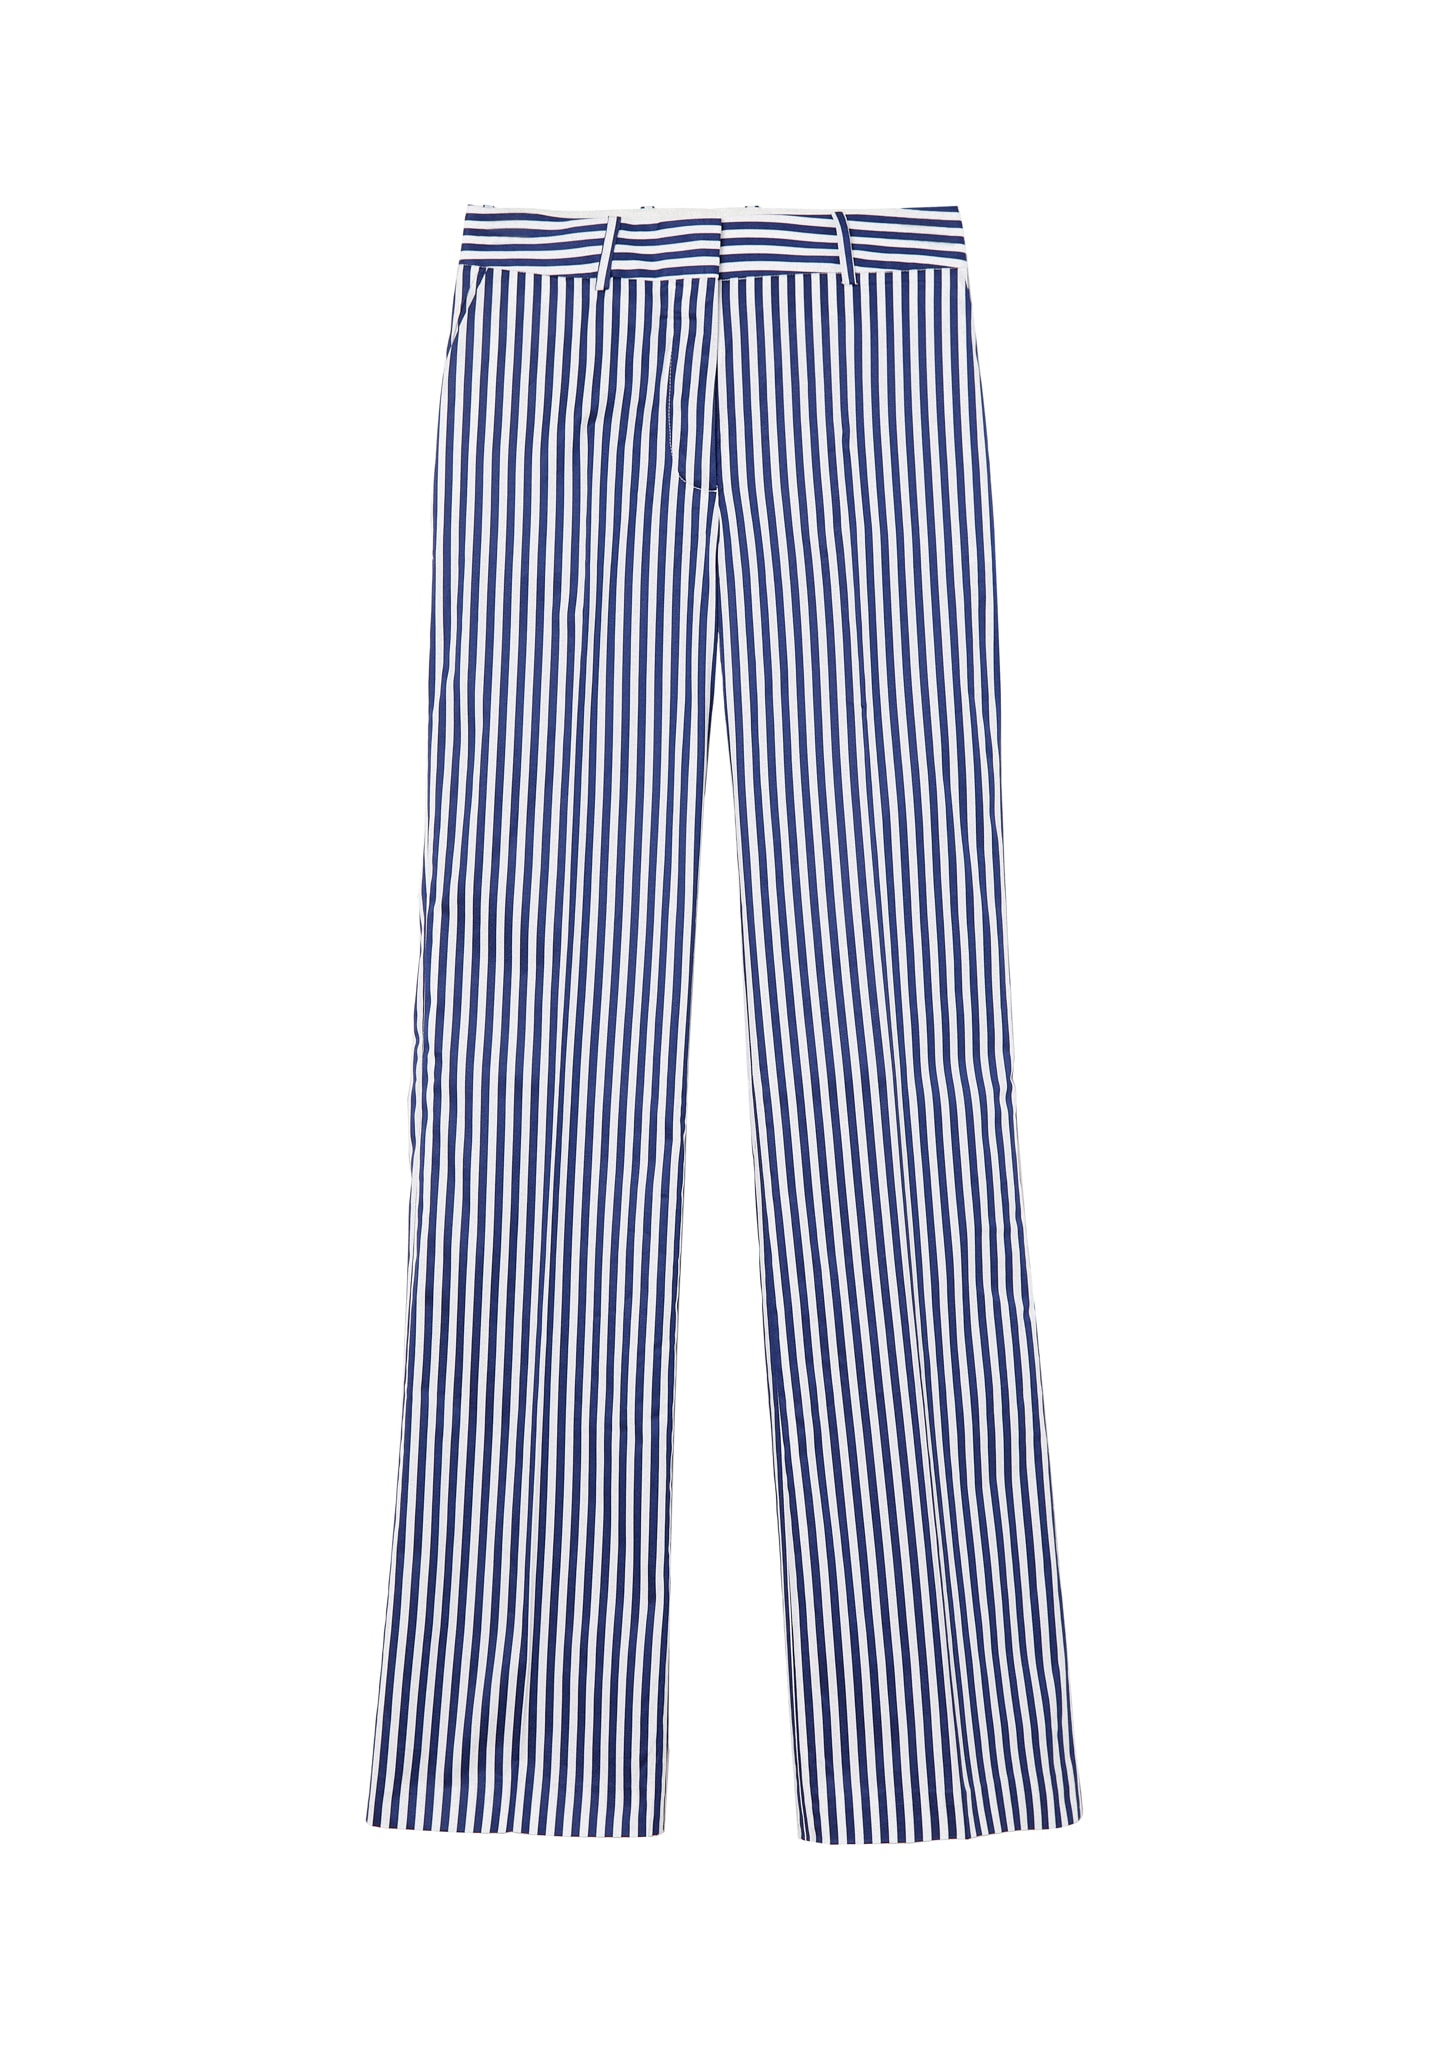 STRIPED STRAIGH-LEG PANTS